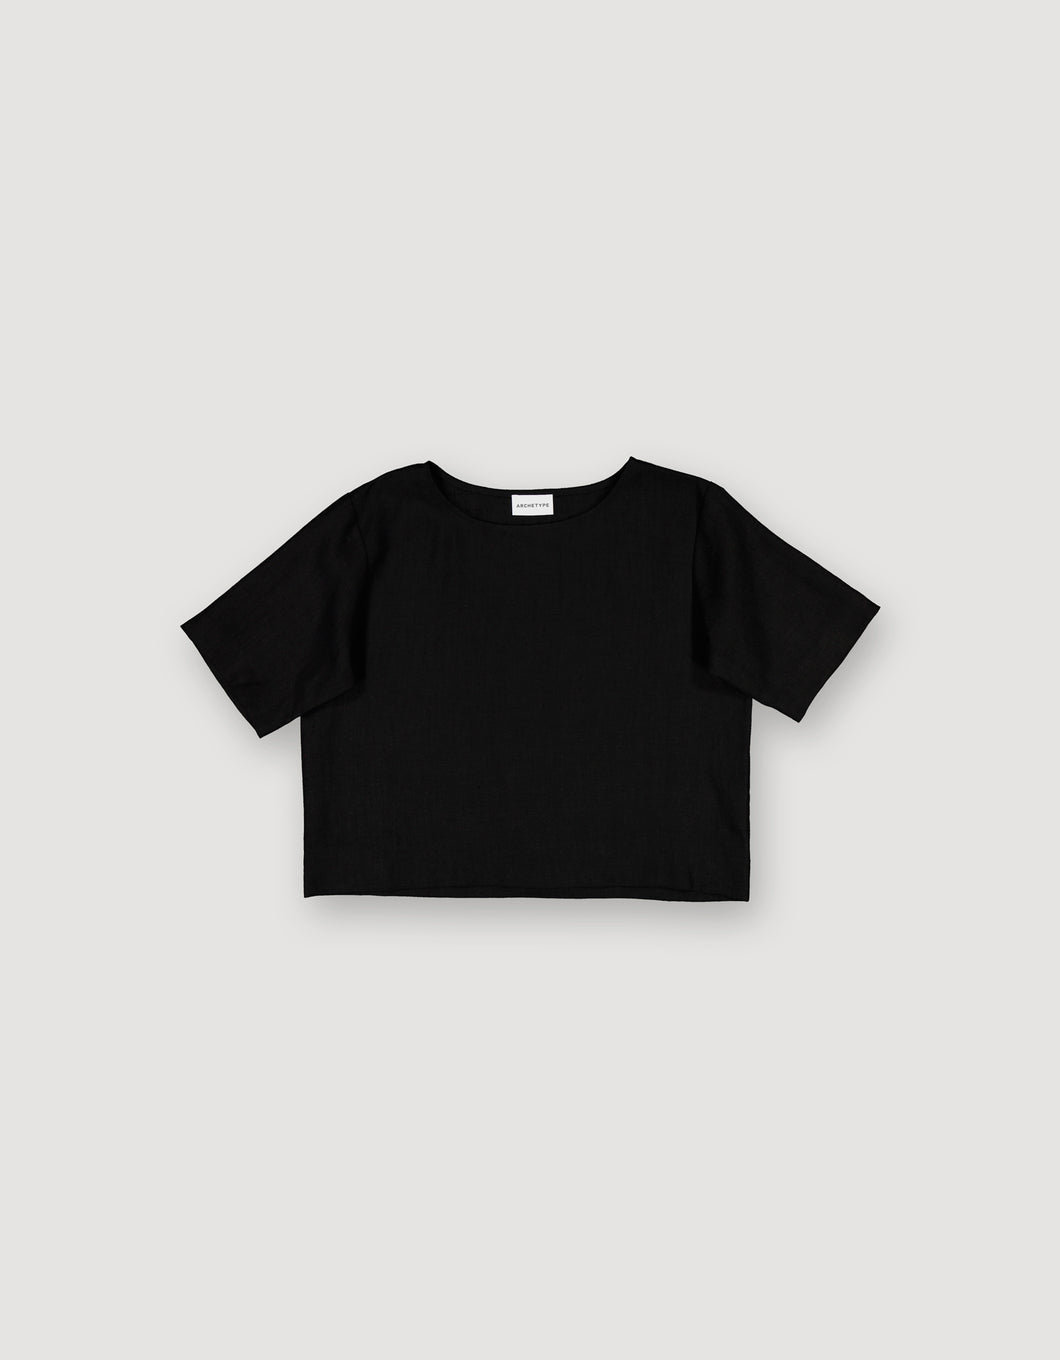 CROPPED SHIRT (BLACK)